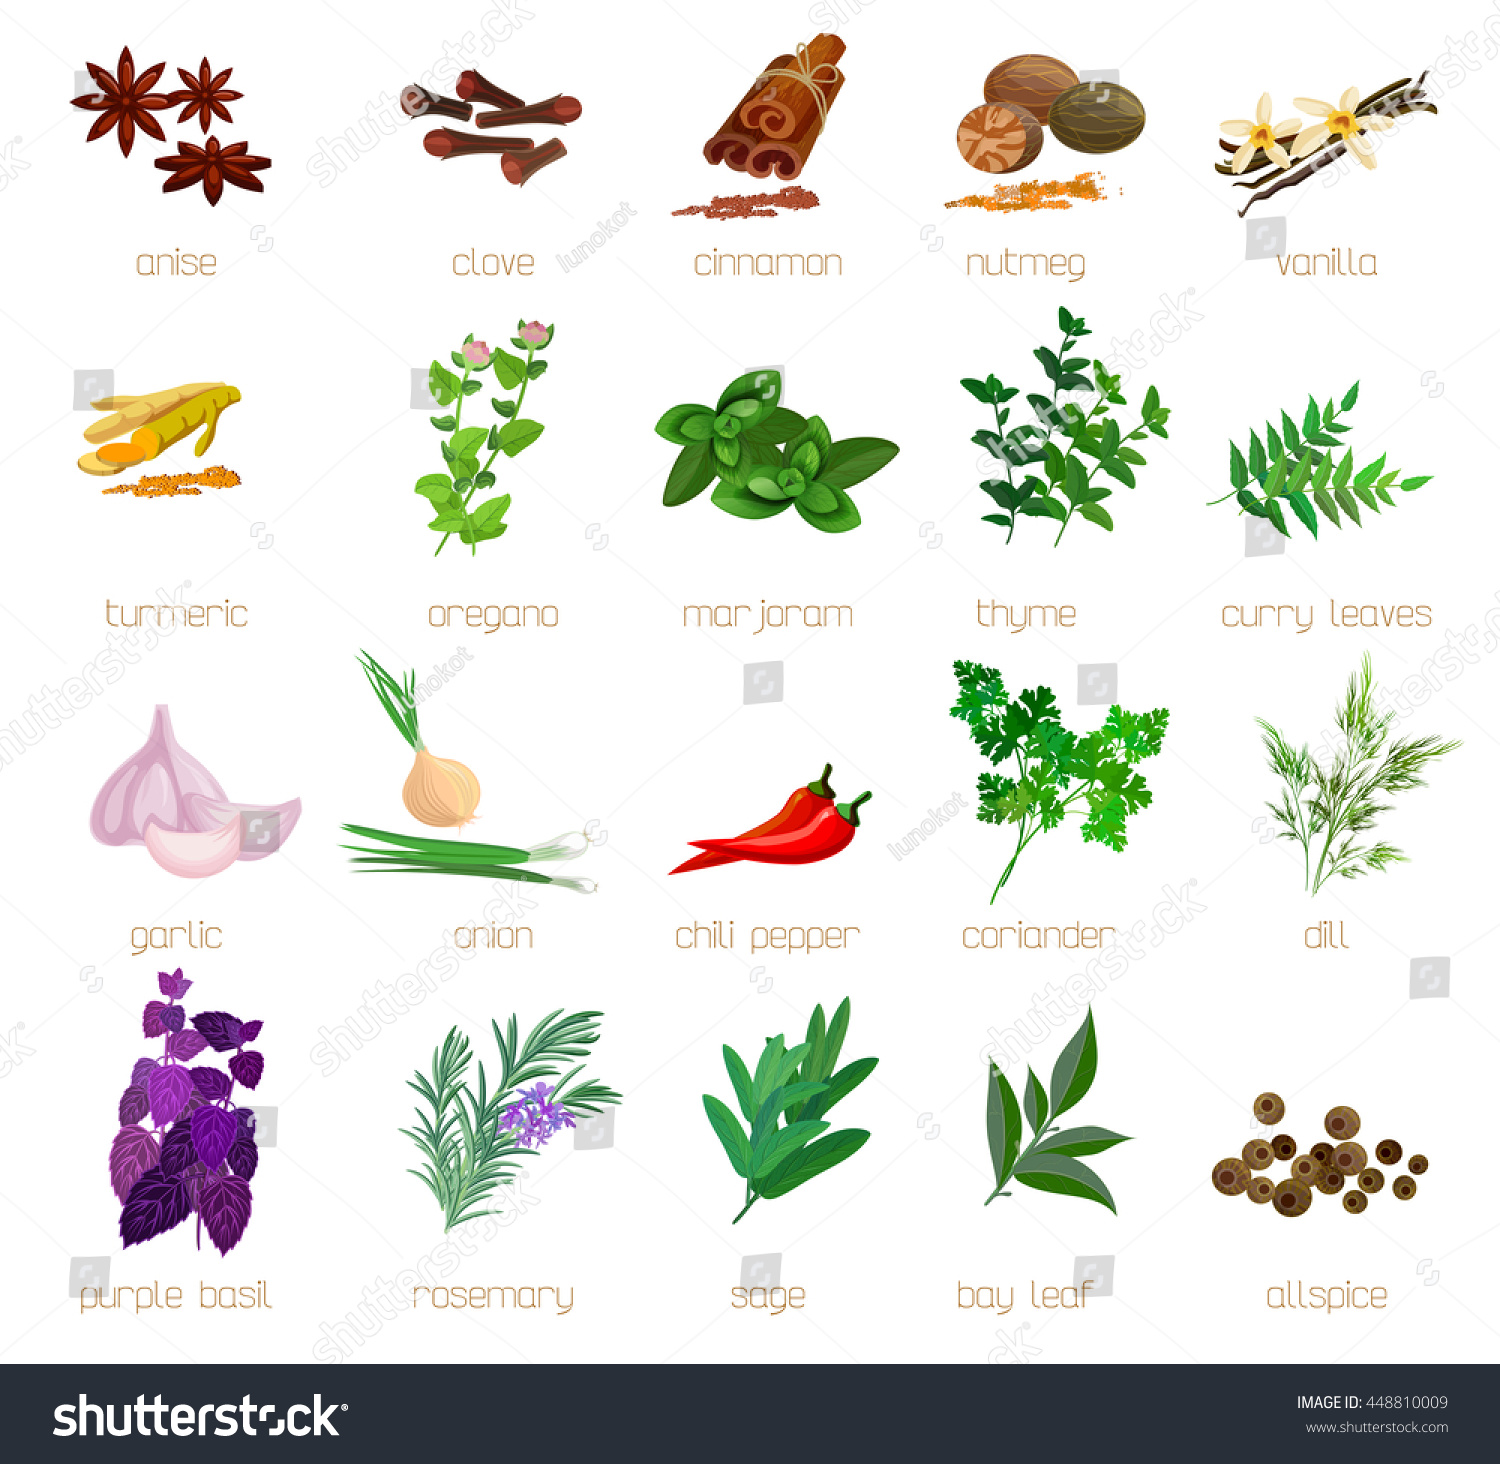 Herbs And Spices With Signed Names Big Stock Photo